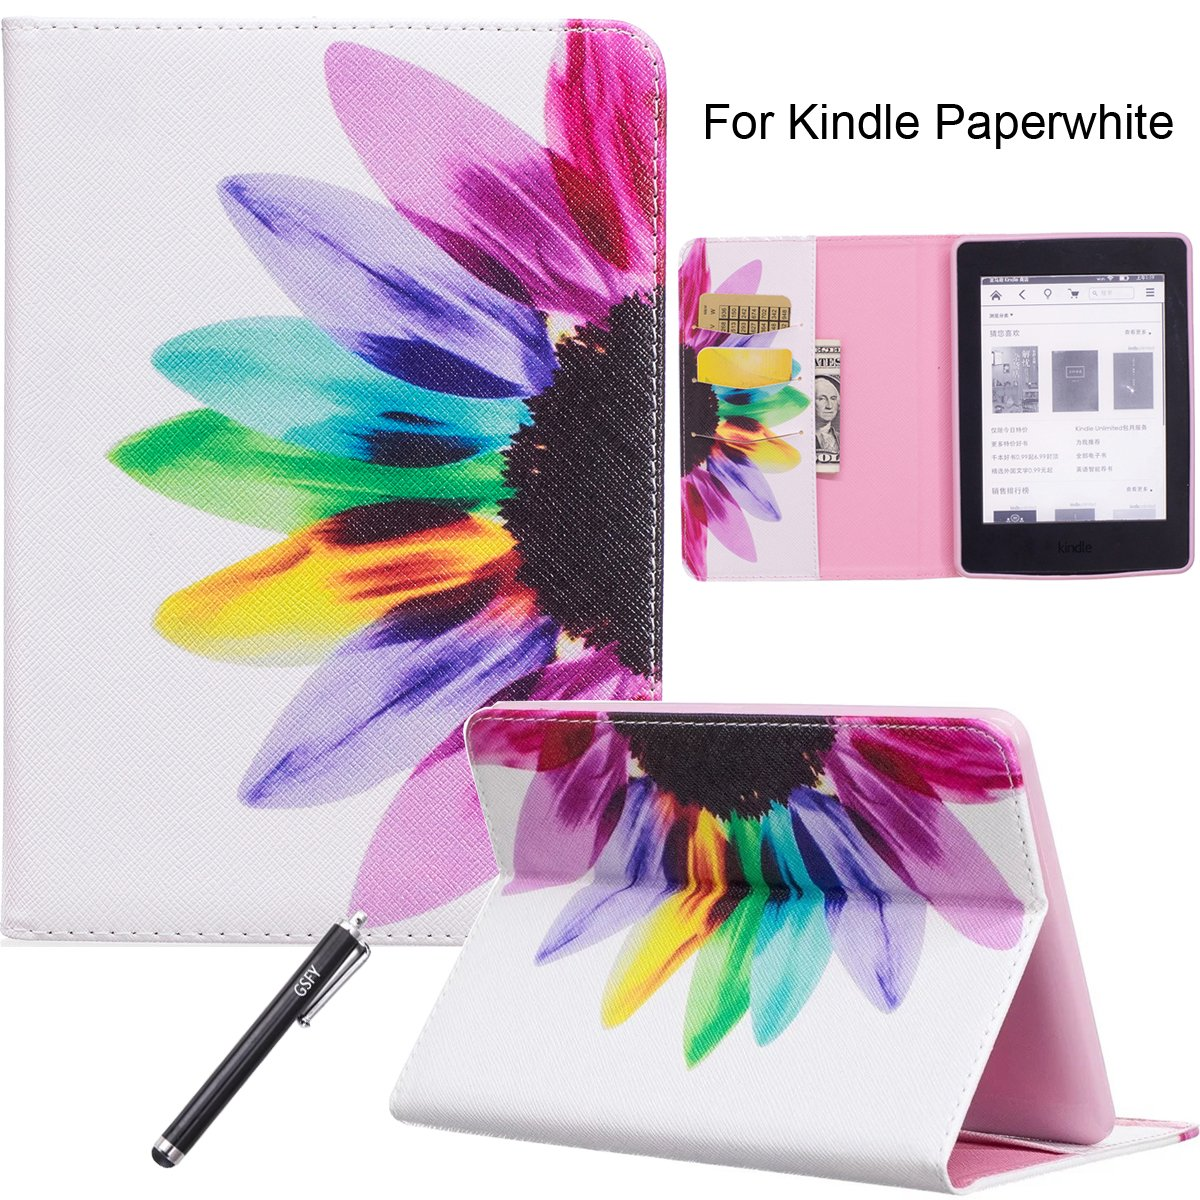 Newshine Kindle Paperwhite Case, Flip Synthetic Leather Premium Case Cover for Amazon Kindle Paperwhite E-reader 6'' (Fits 2012, 2013, 2014, 2015 Versions) with Card Slots/Holder - Flower